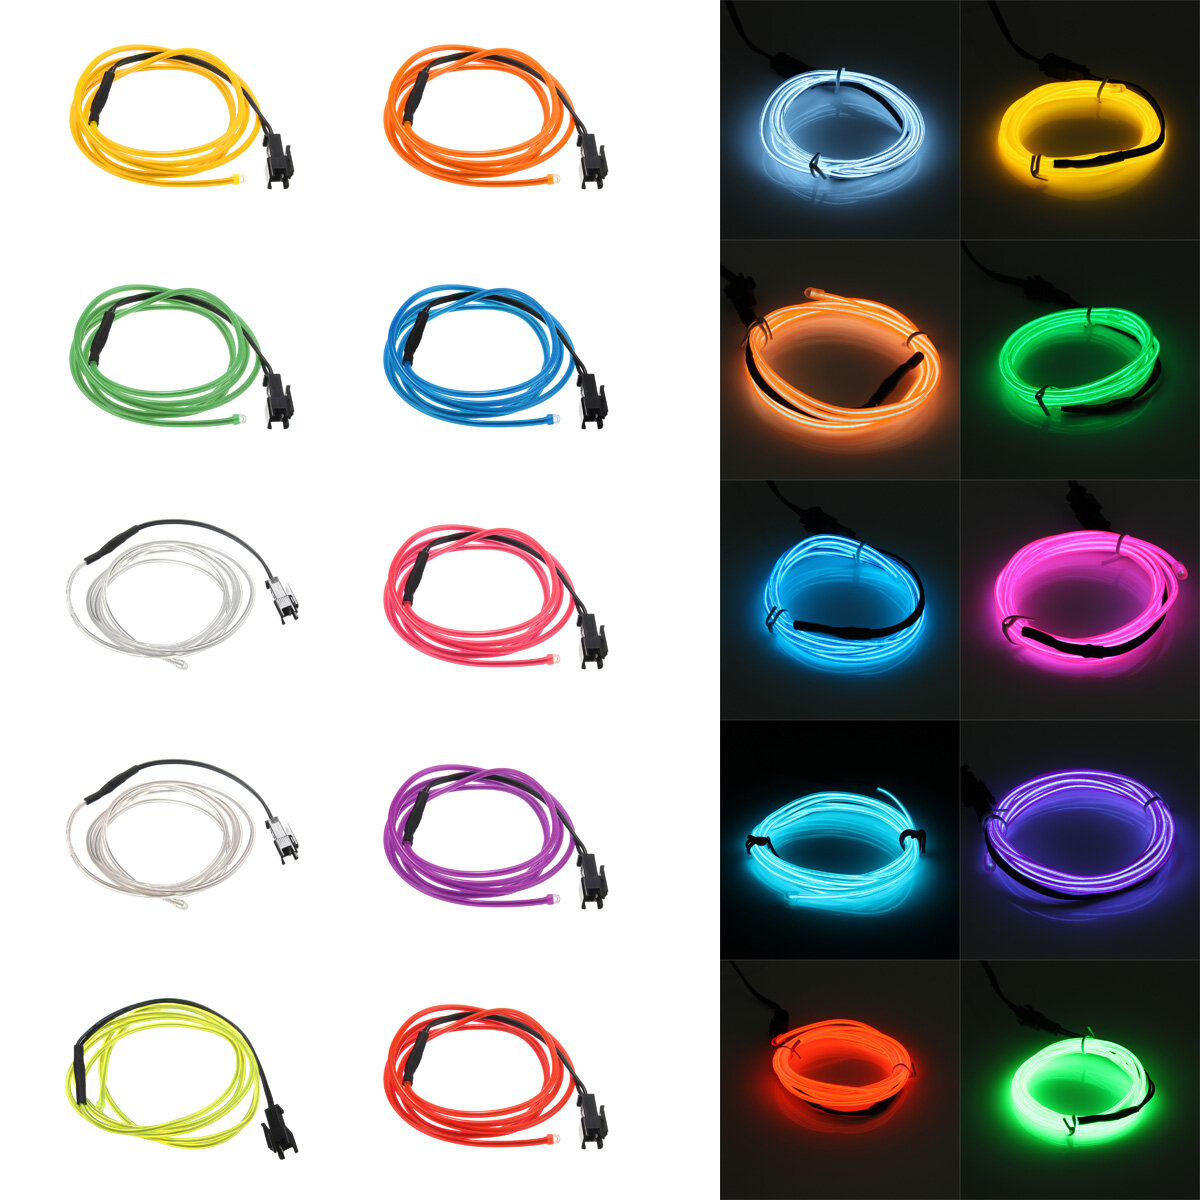 1M 10 colors 3V Flexible Neon EL Wire Light Dance Party Decor Light Battery Powered Controller